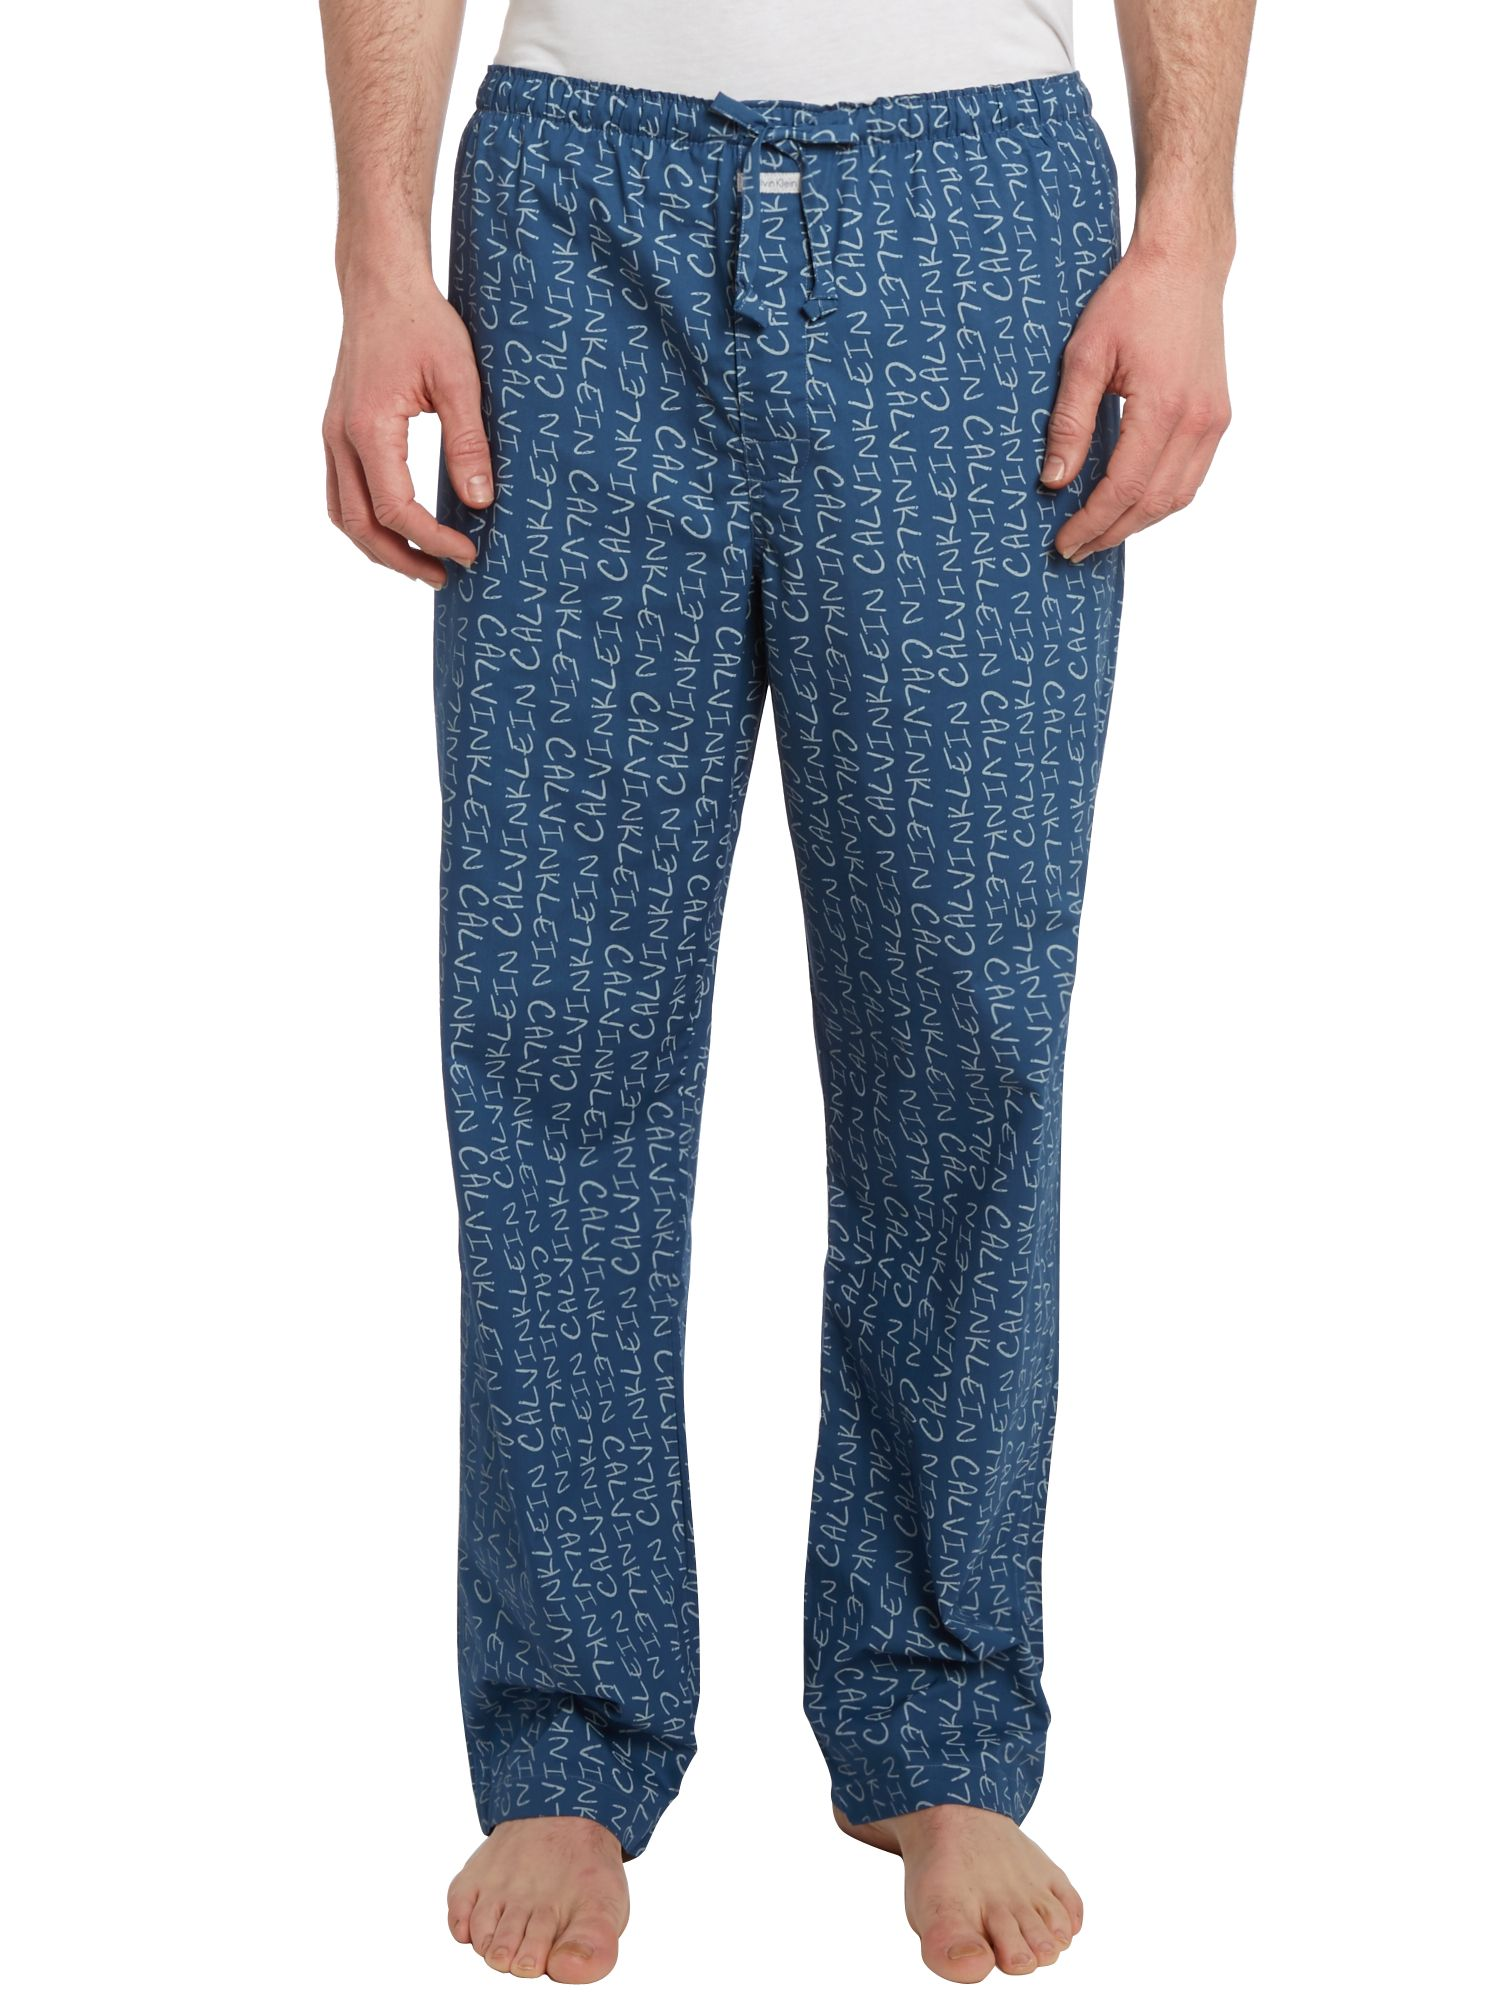 Stripe nightwear pant